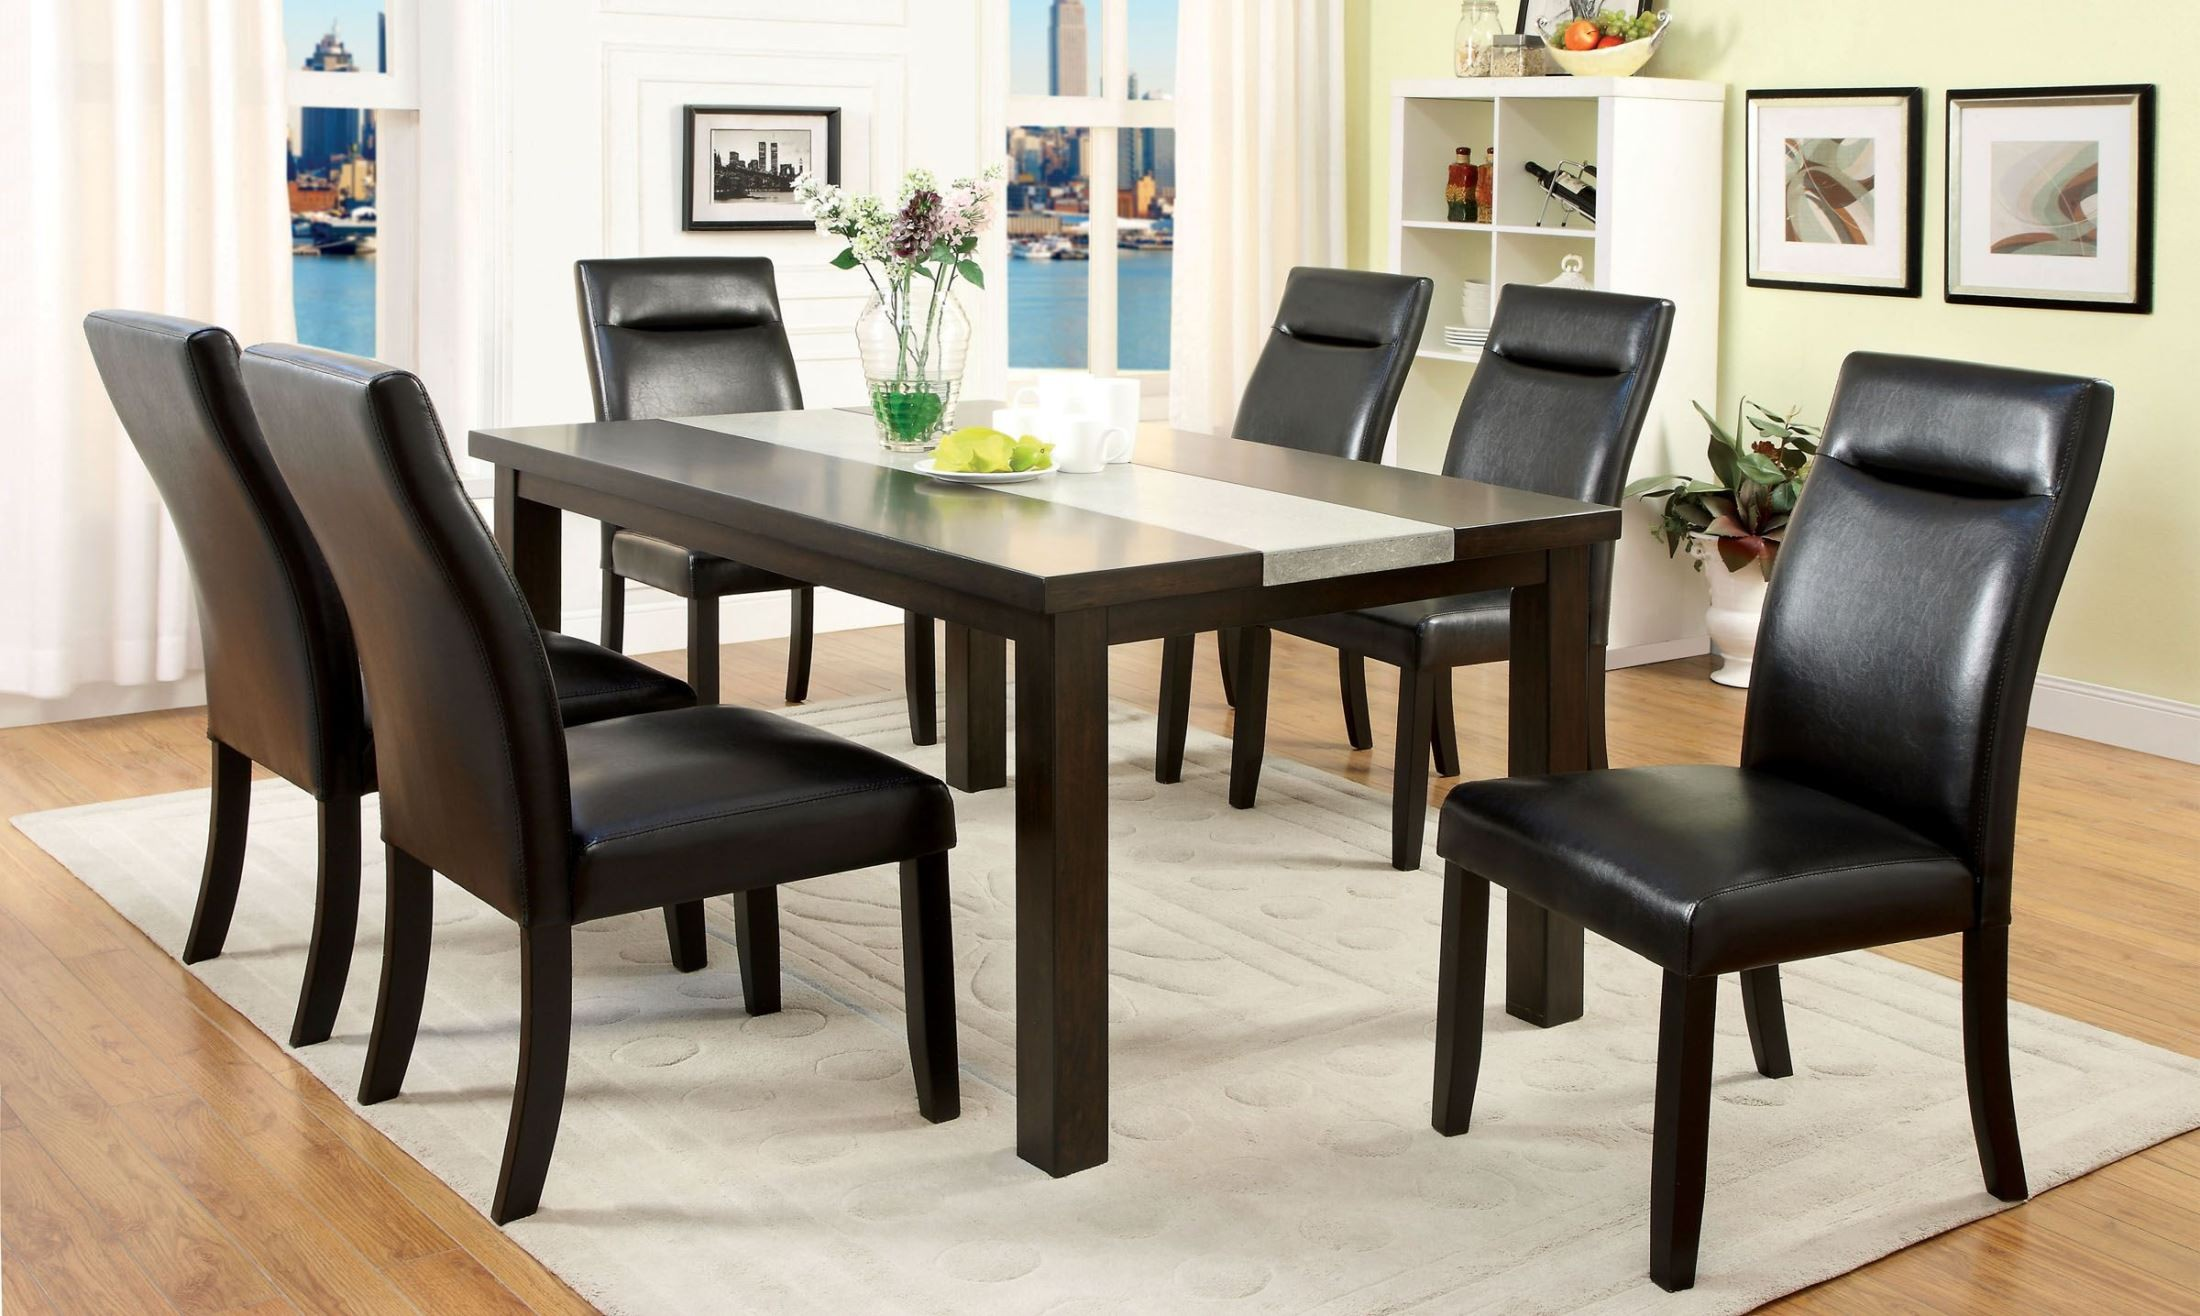 Stunning Concrete Dining Room Table Designs – Dievoon